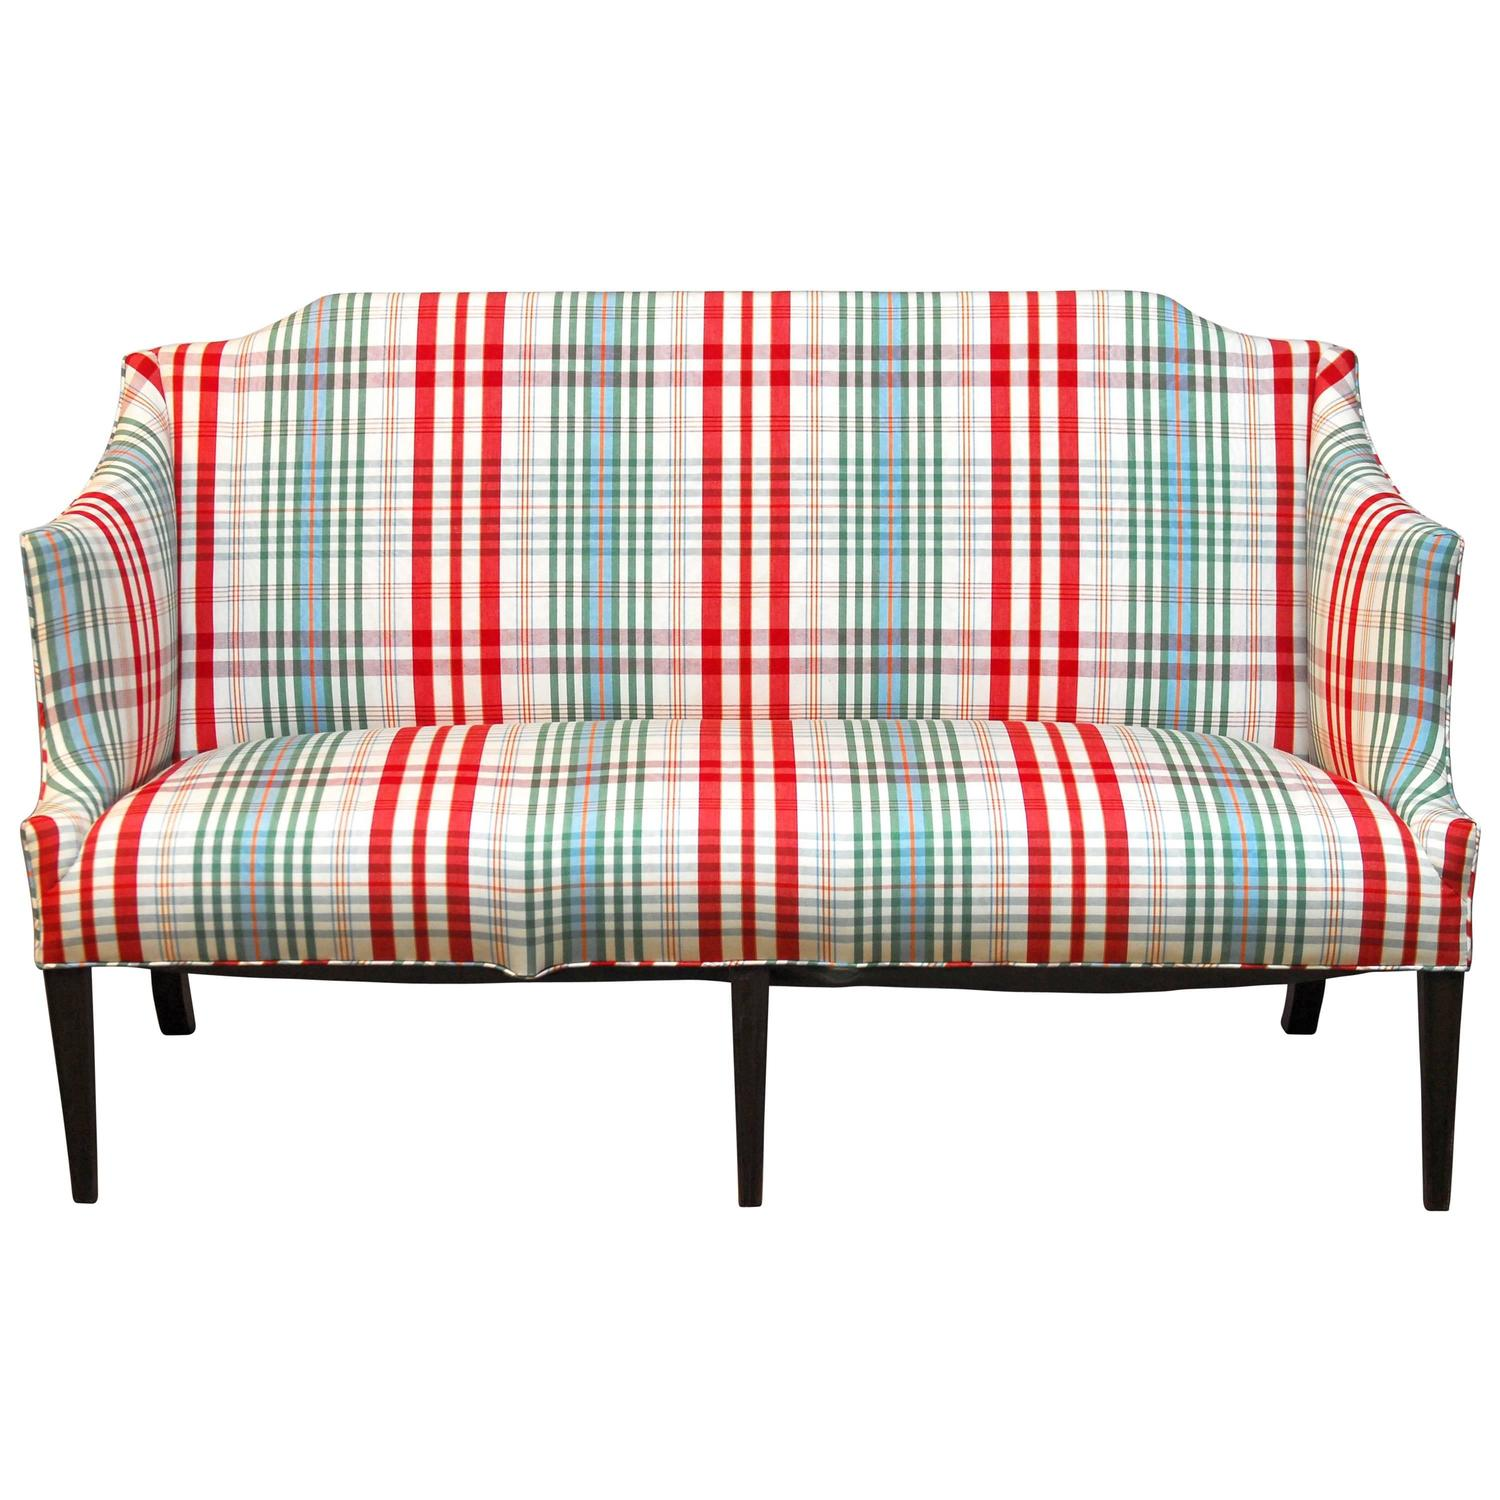 Modern sheraton style plaid settee sofa at 1stdibs - Plaid para sofa ...